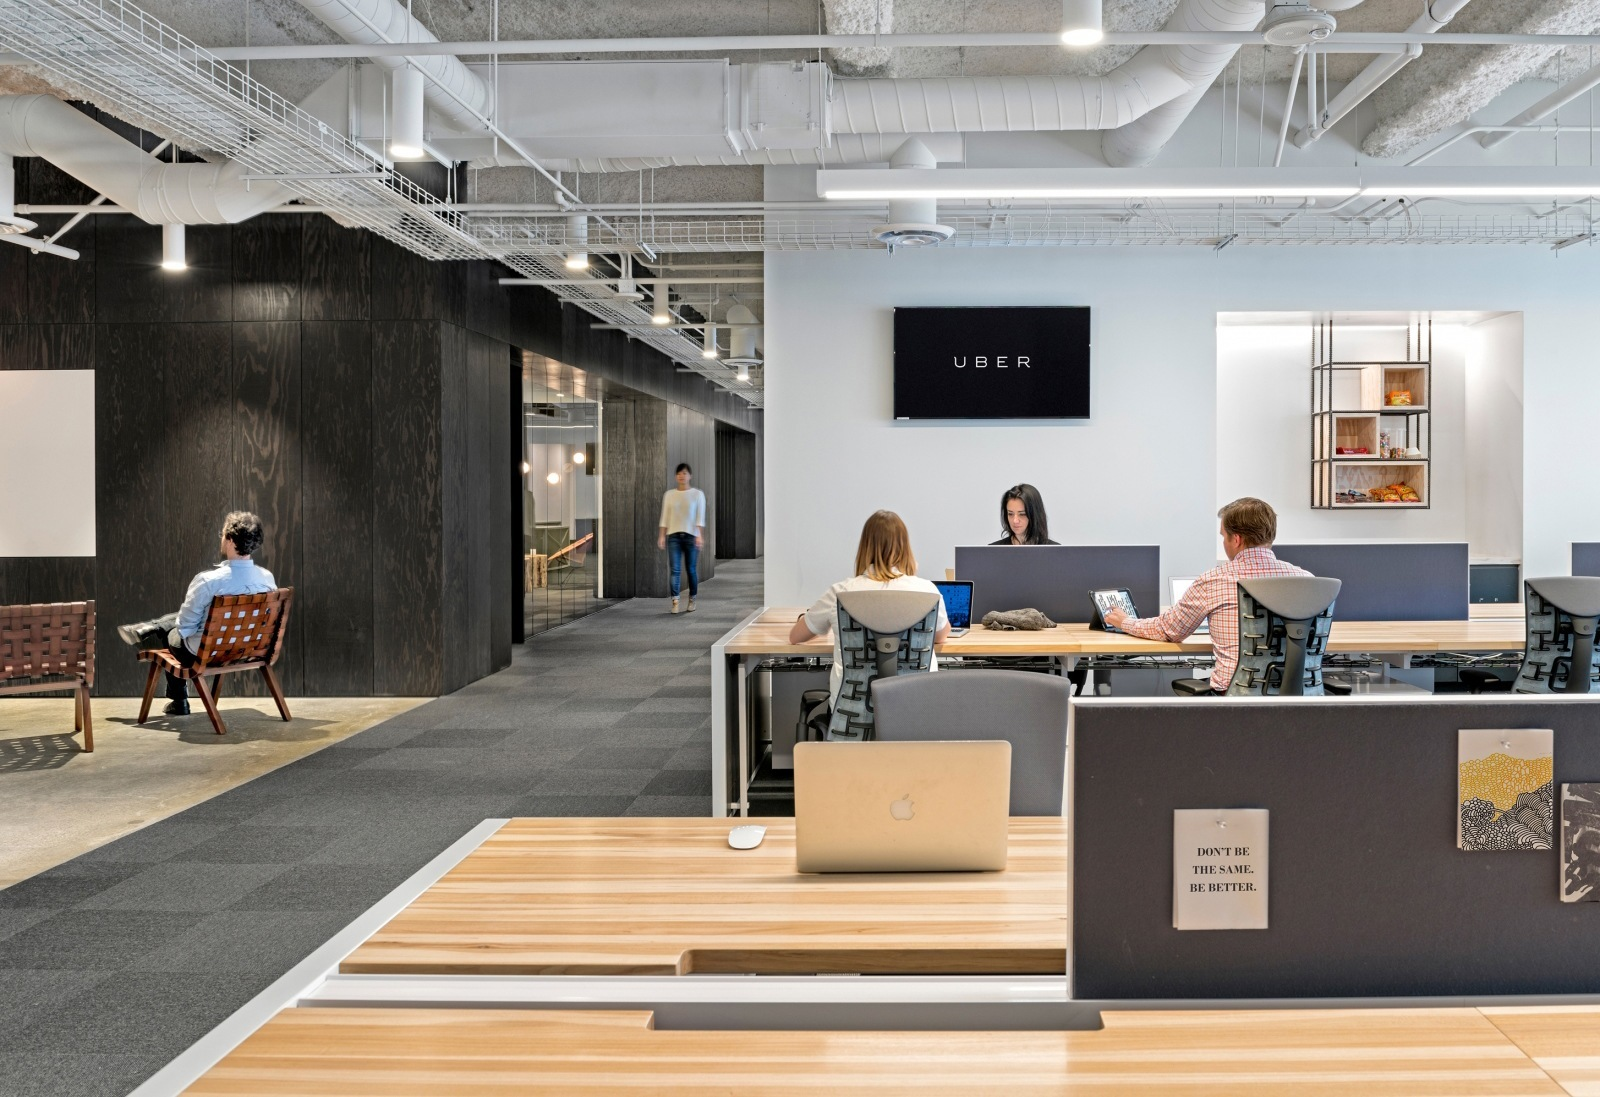 uber office design studio. Uber Office Design Studio